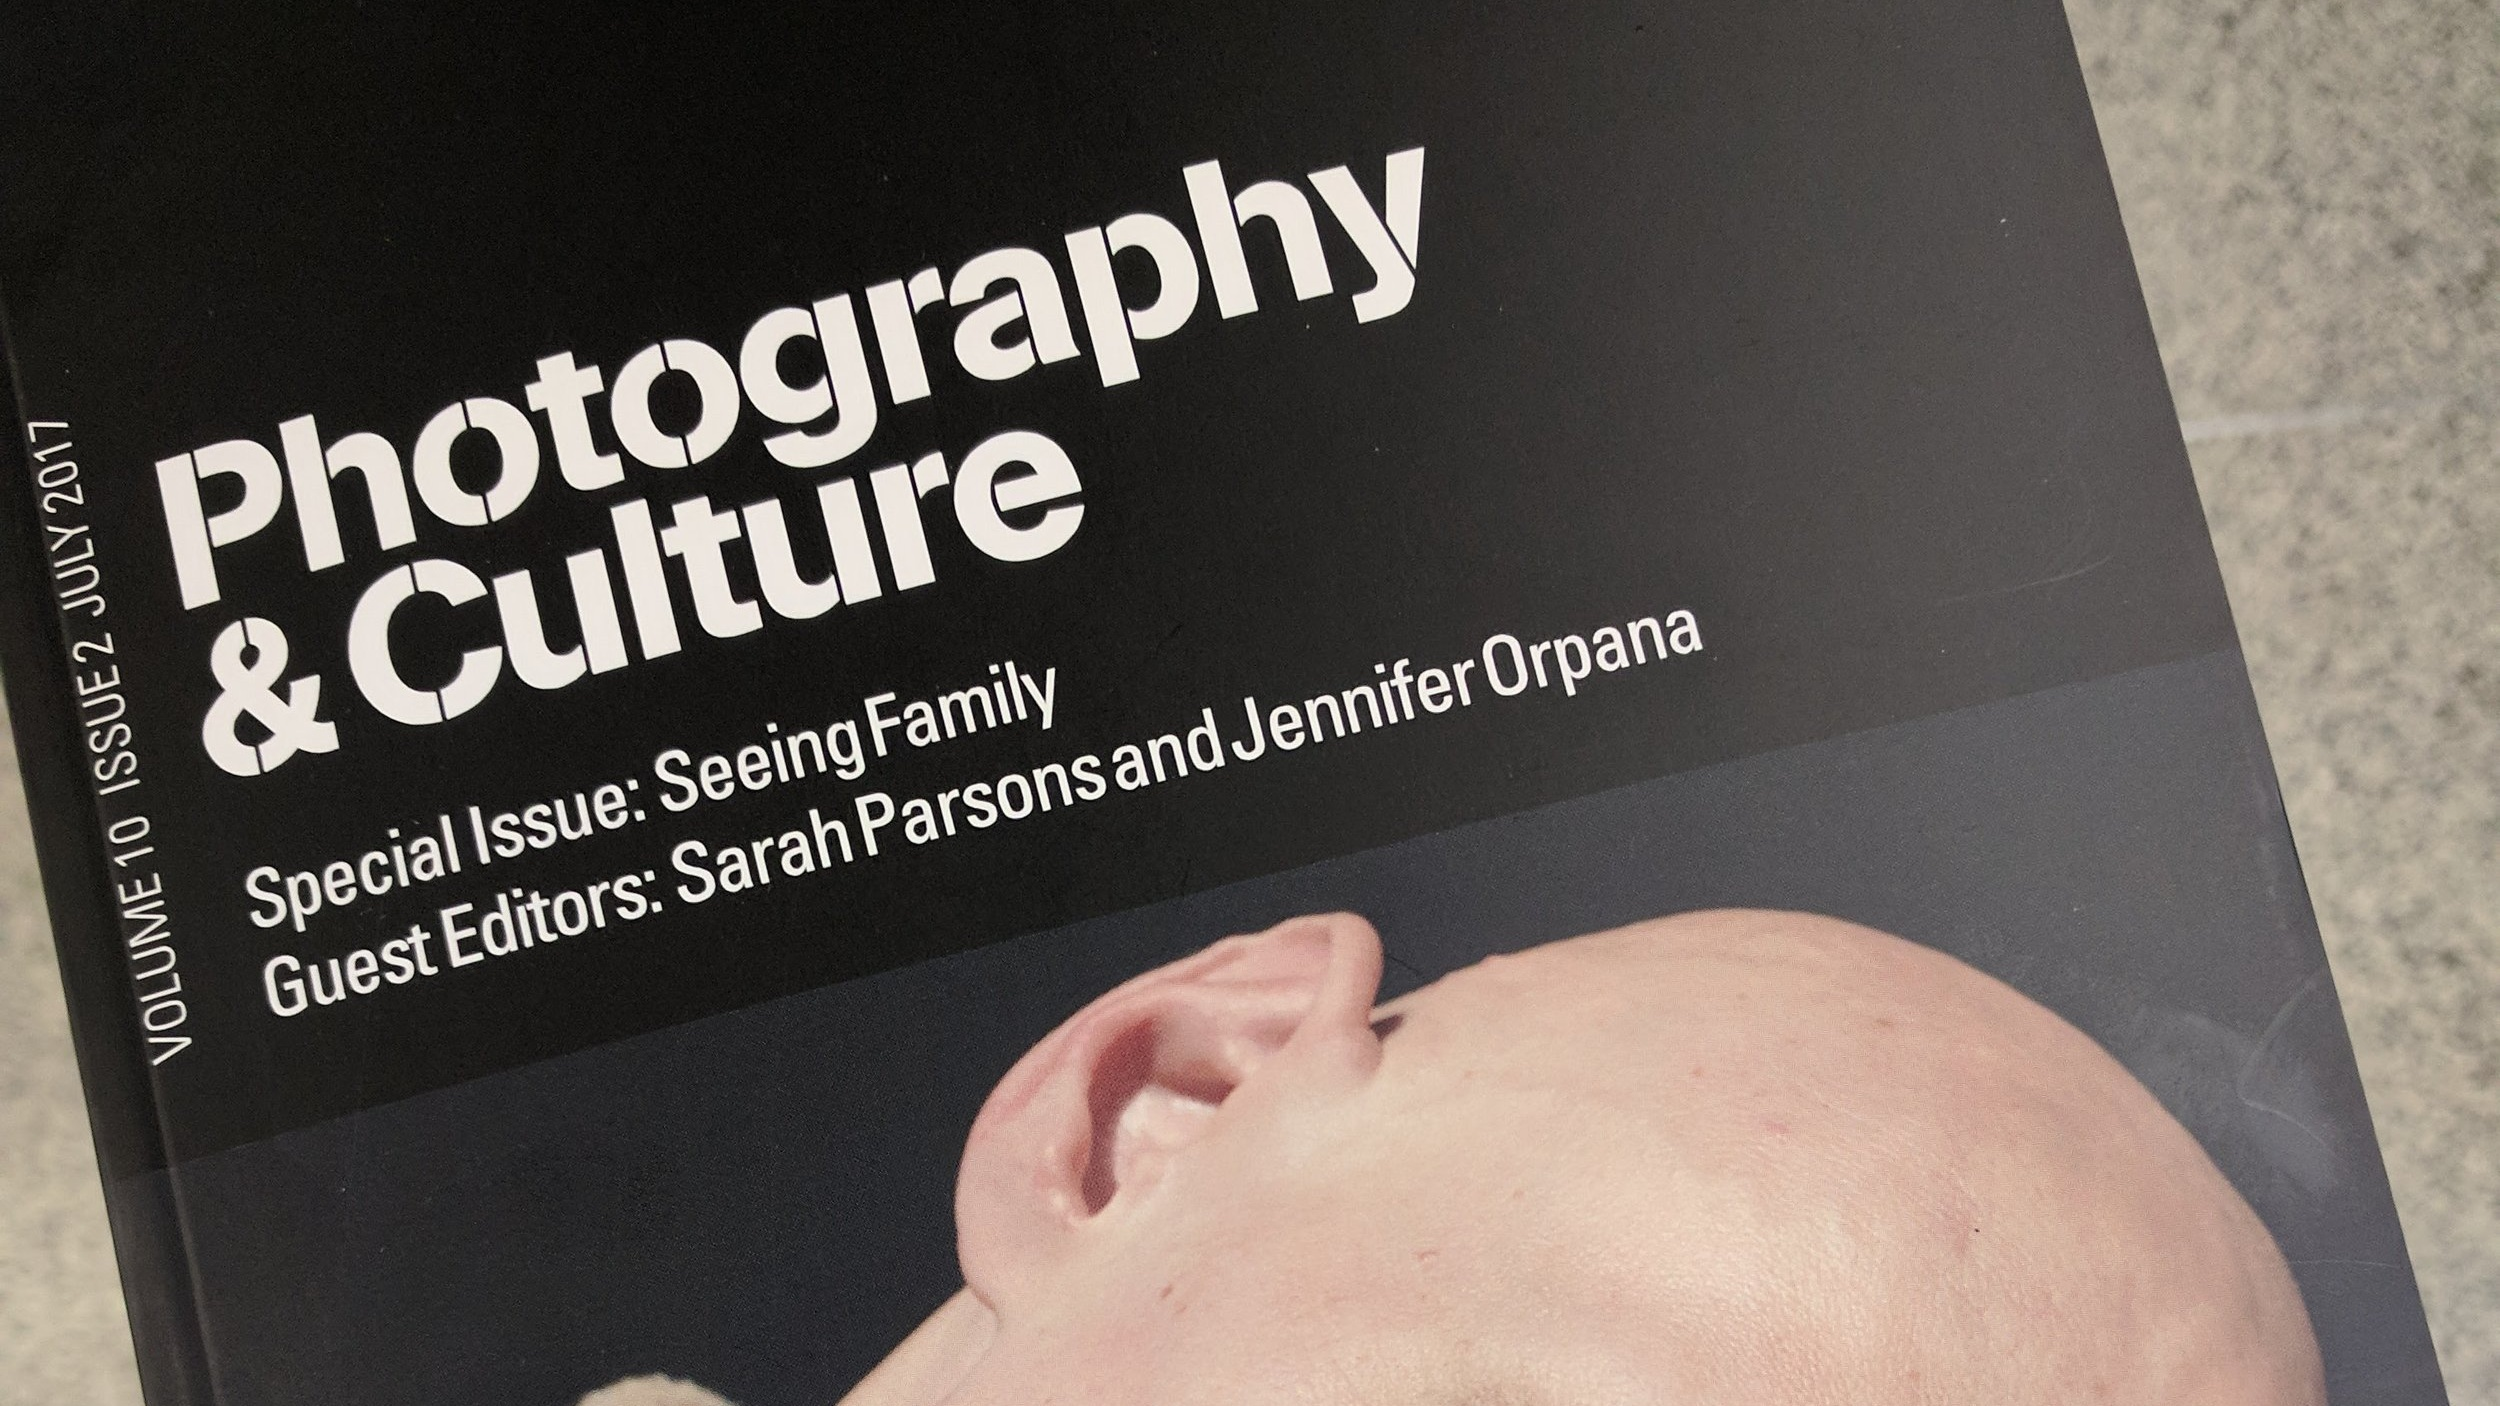 Cover of  photography & culture: seeing family  special issue (J. Orpana, 2017).